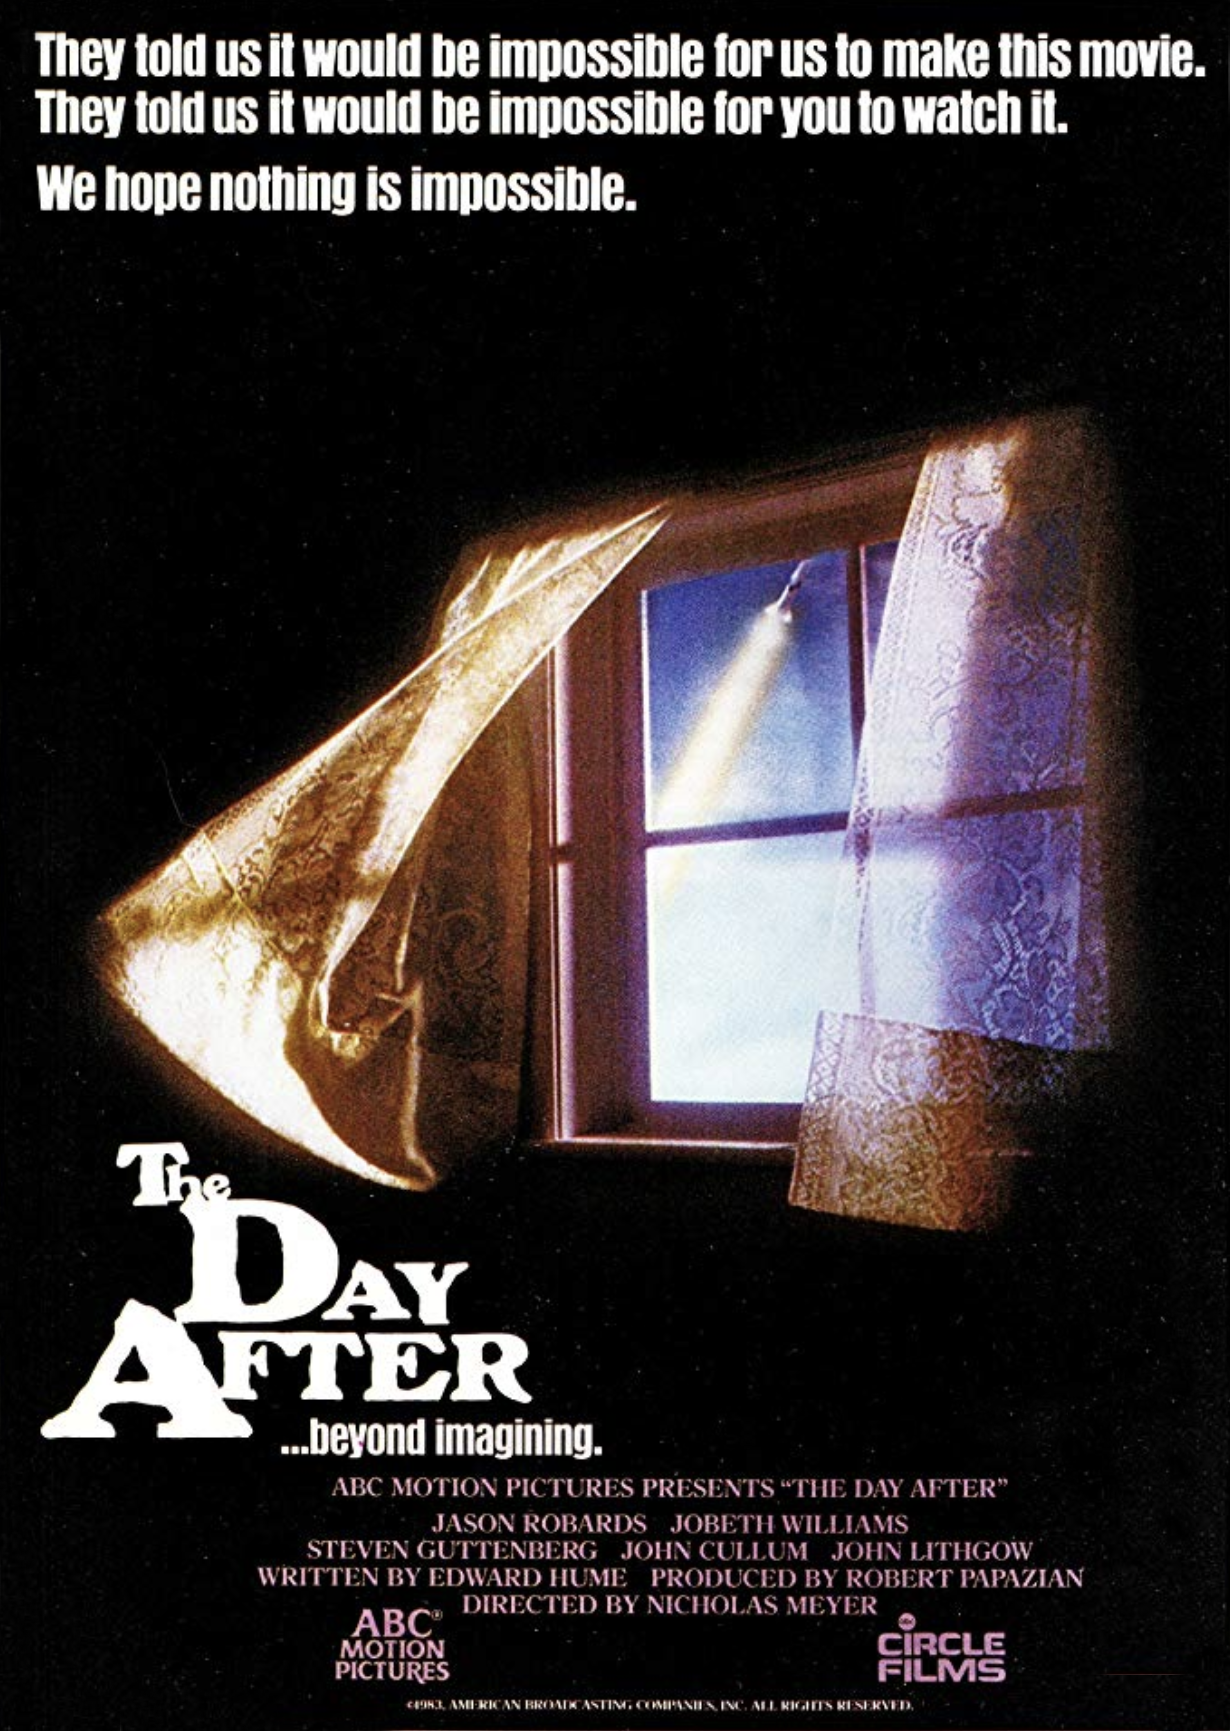 1983 The Day After, director